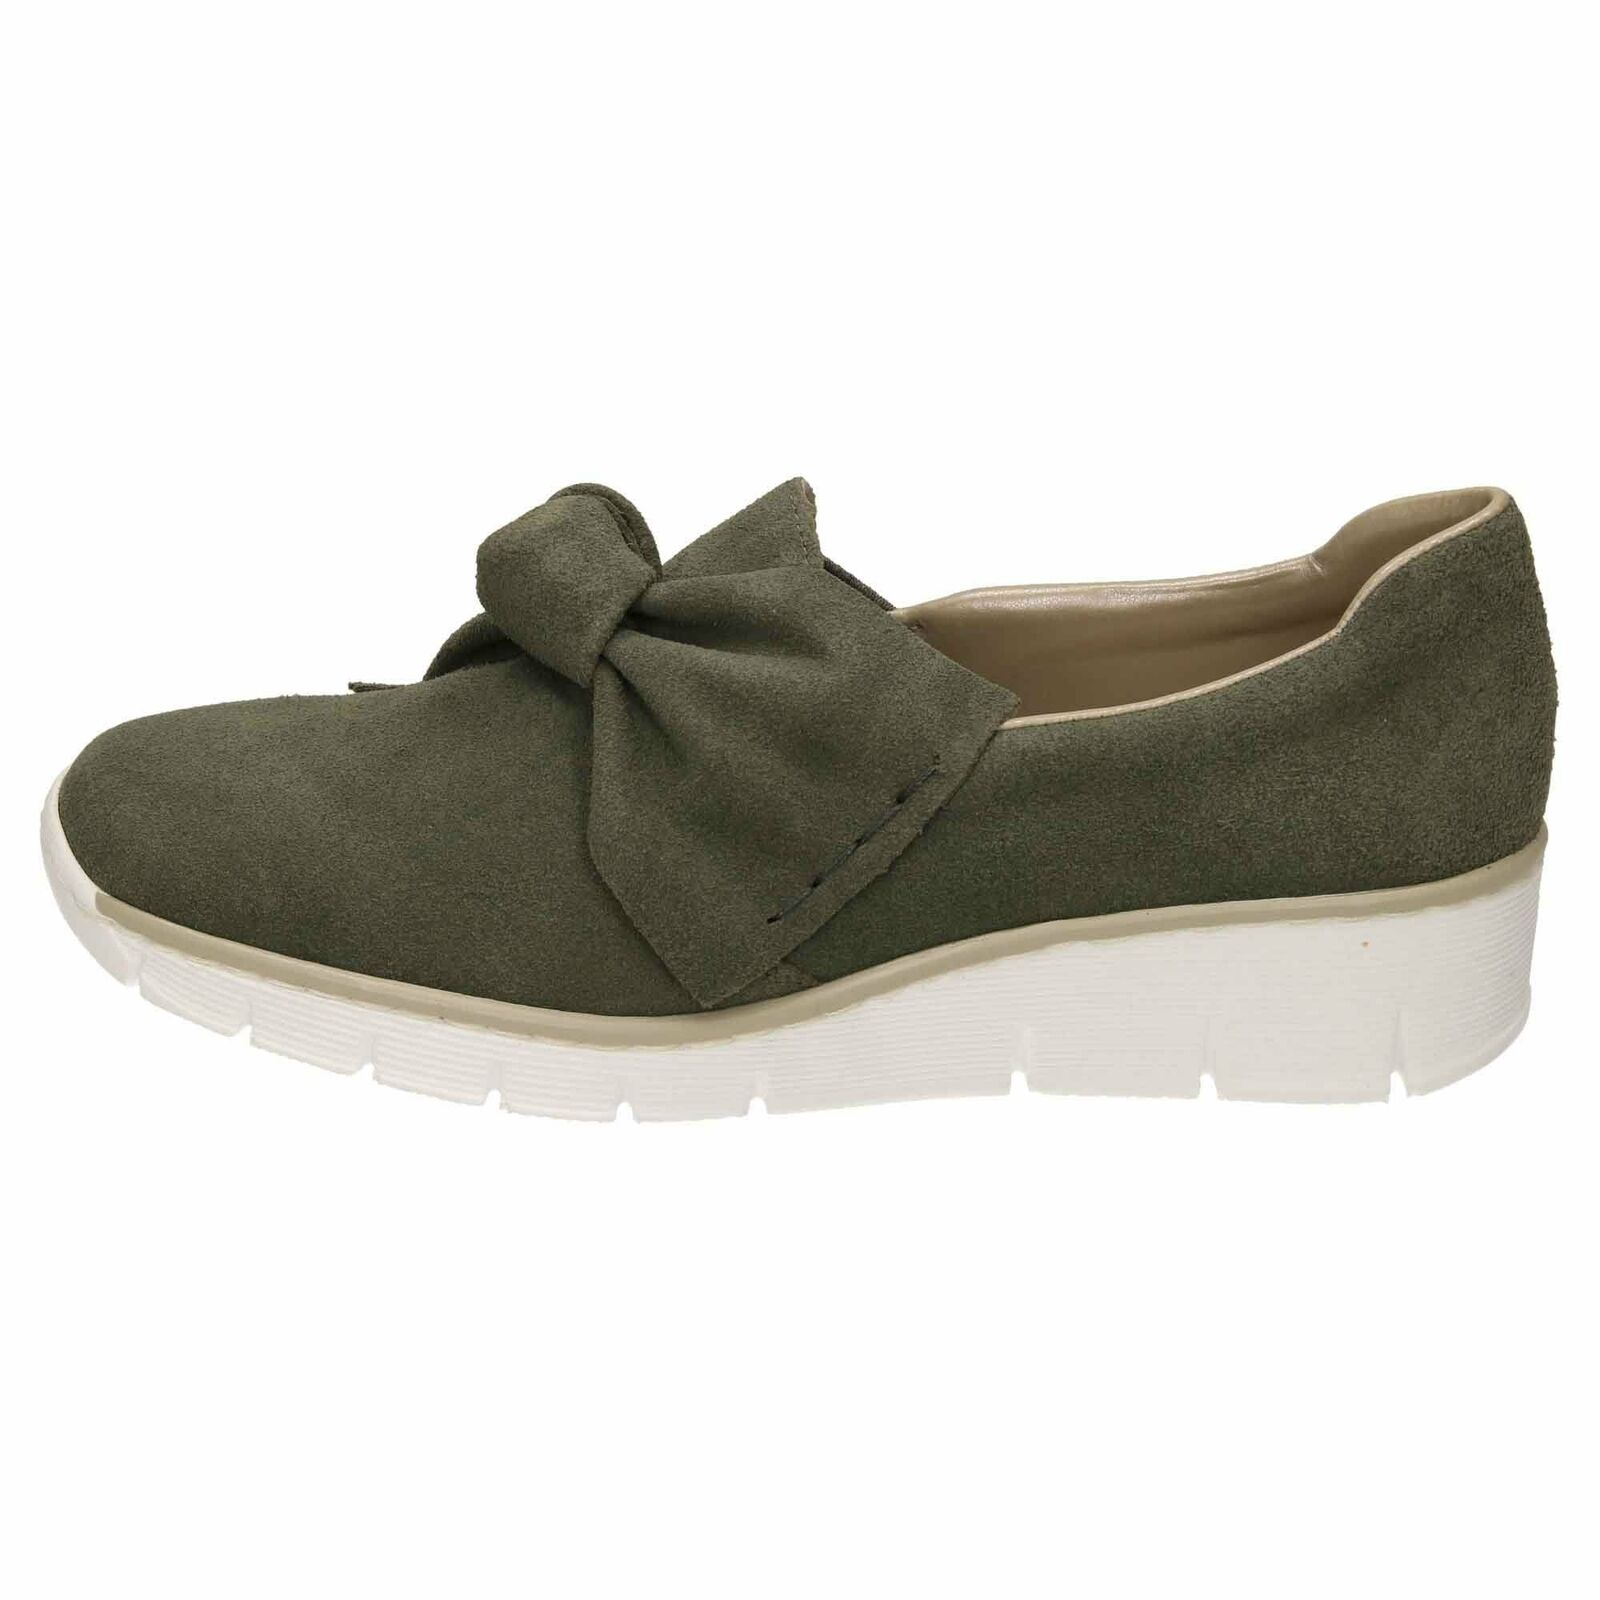 Rieker Suede Leather Loafer shoes 537Q4-54 Low Wedge Wedge Wedge Flat Slip On Pumps d1eafc